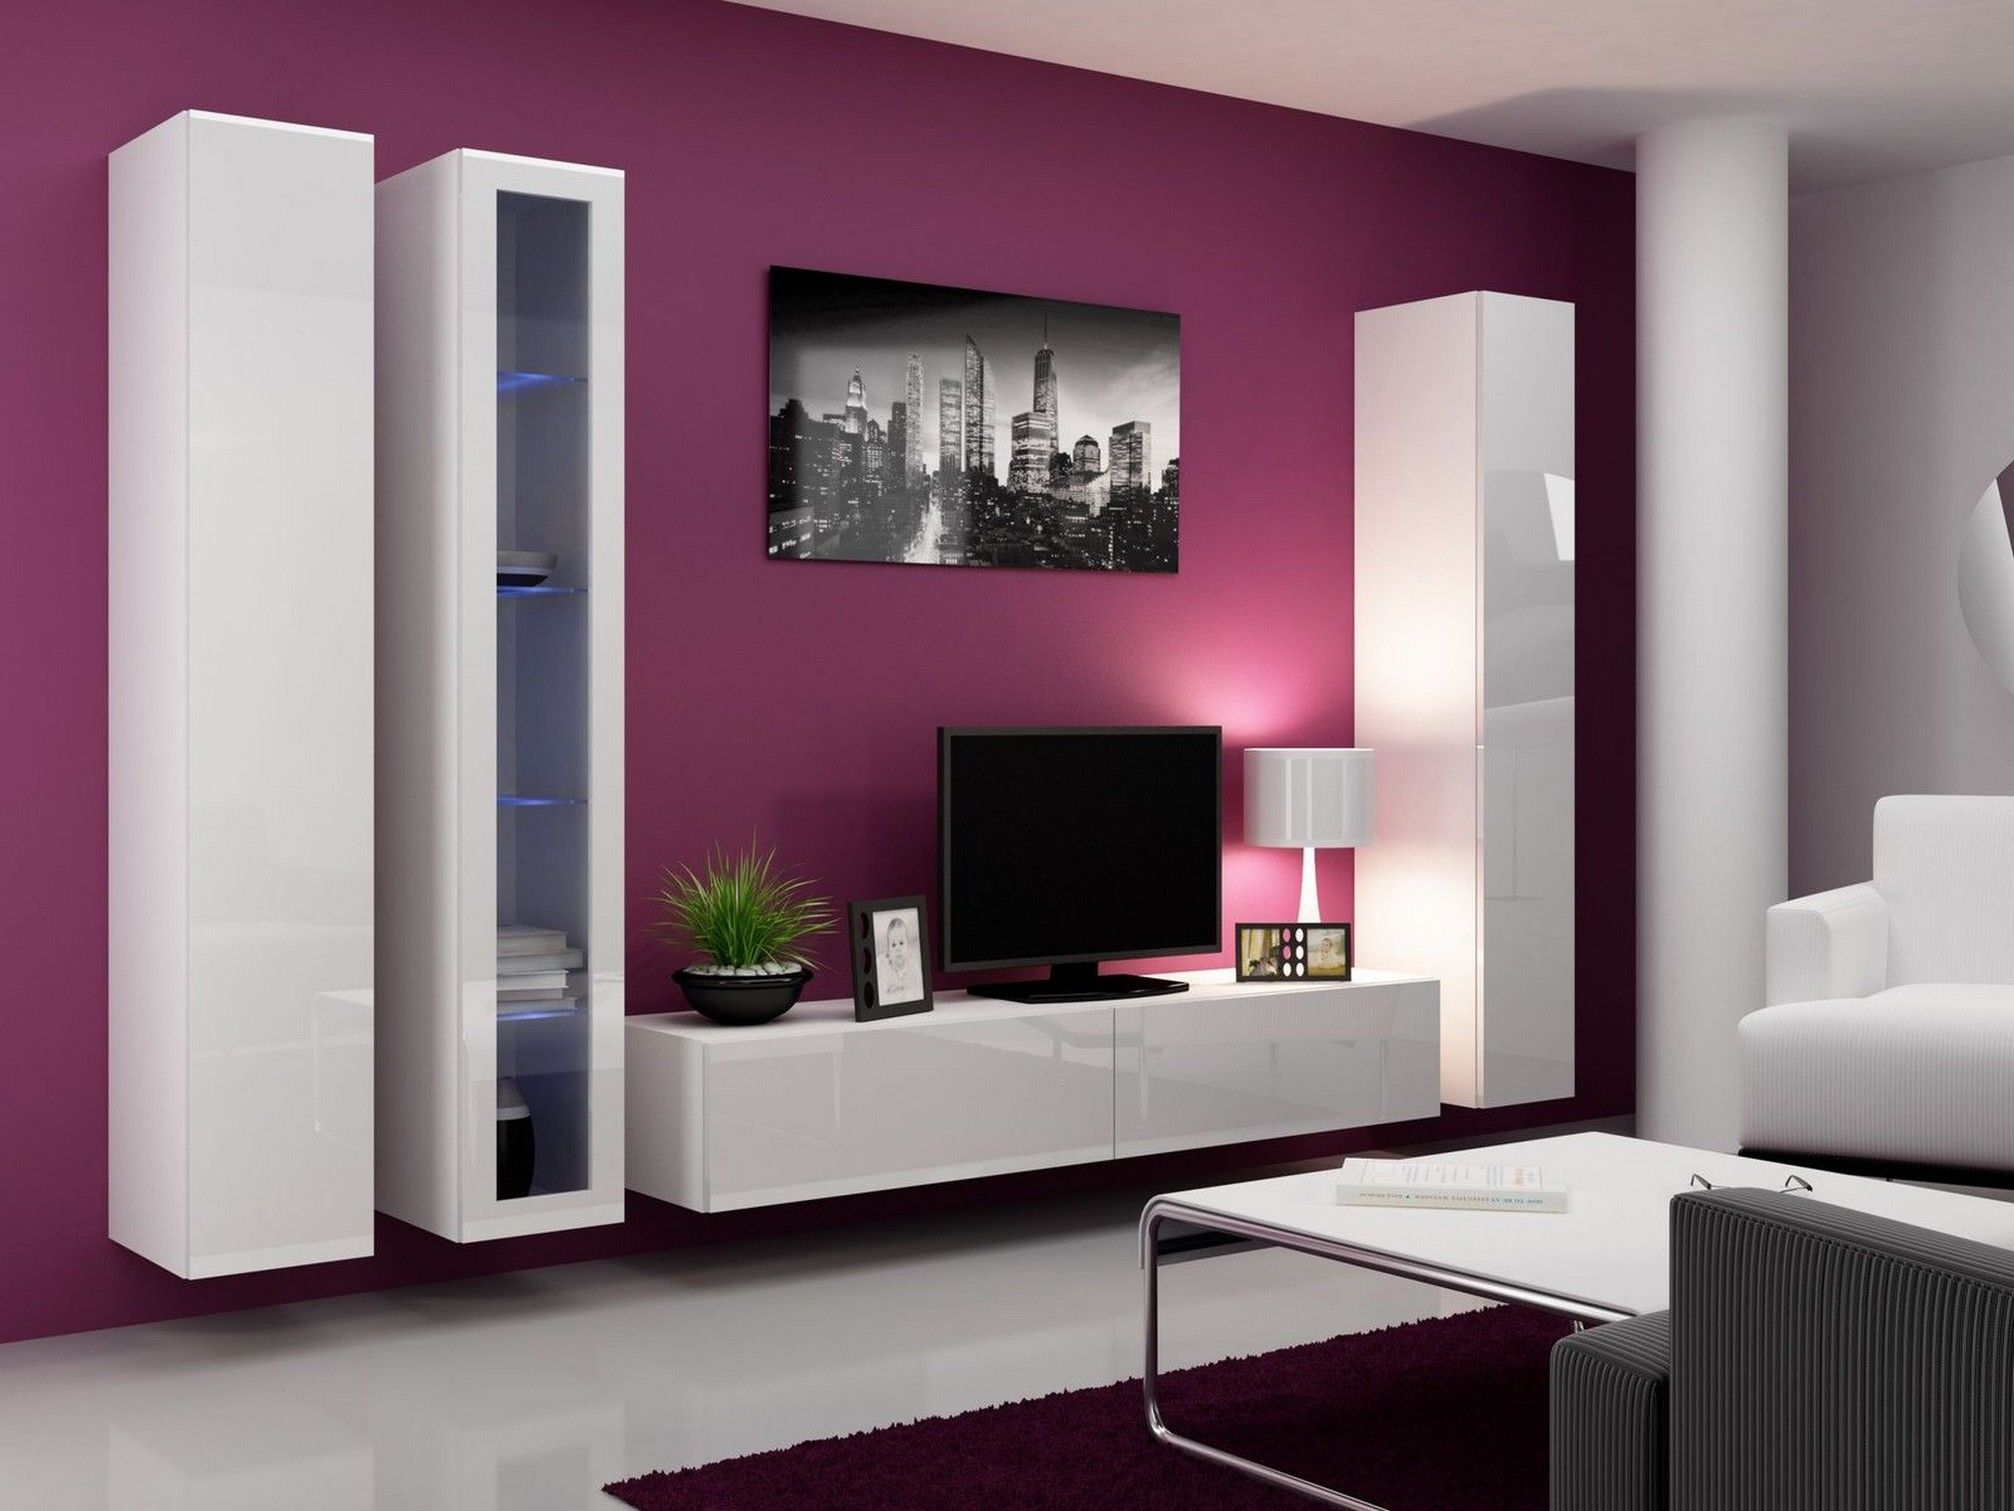 Furniture Design Pink Color Schemes Ideas For Living Room Unique Tv Purple Wall Color Scheme Bedr Living Room Wall Units Modern Tv Wall Units Living Room Tv